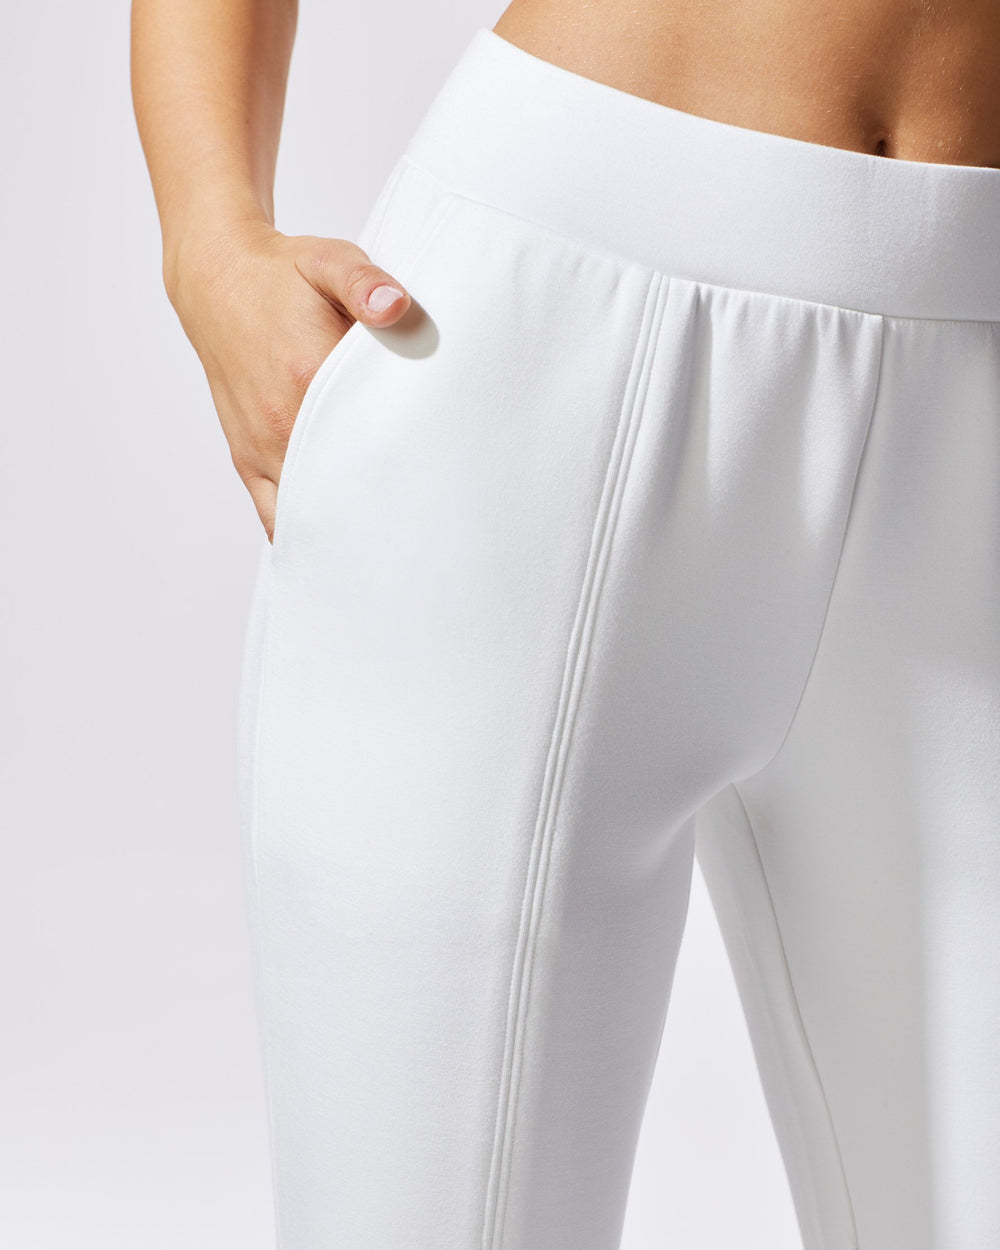 Lair Pant - Ivory